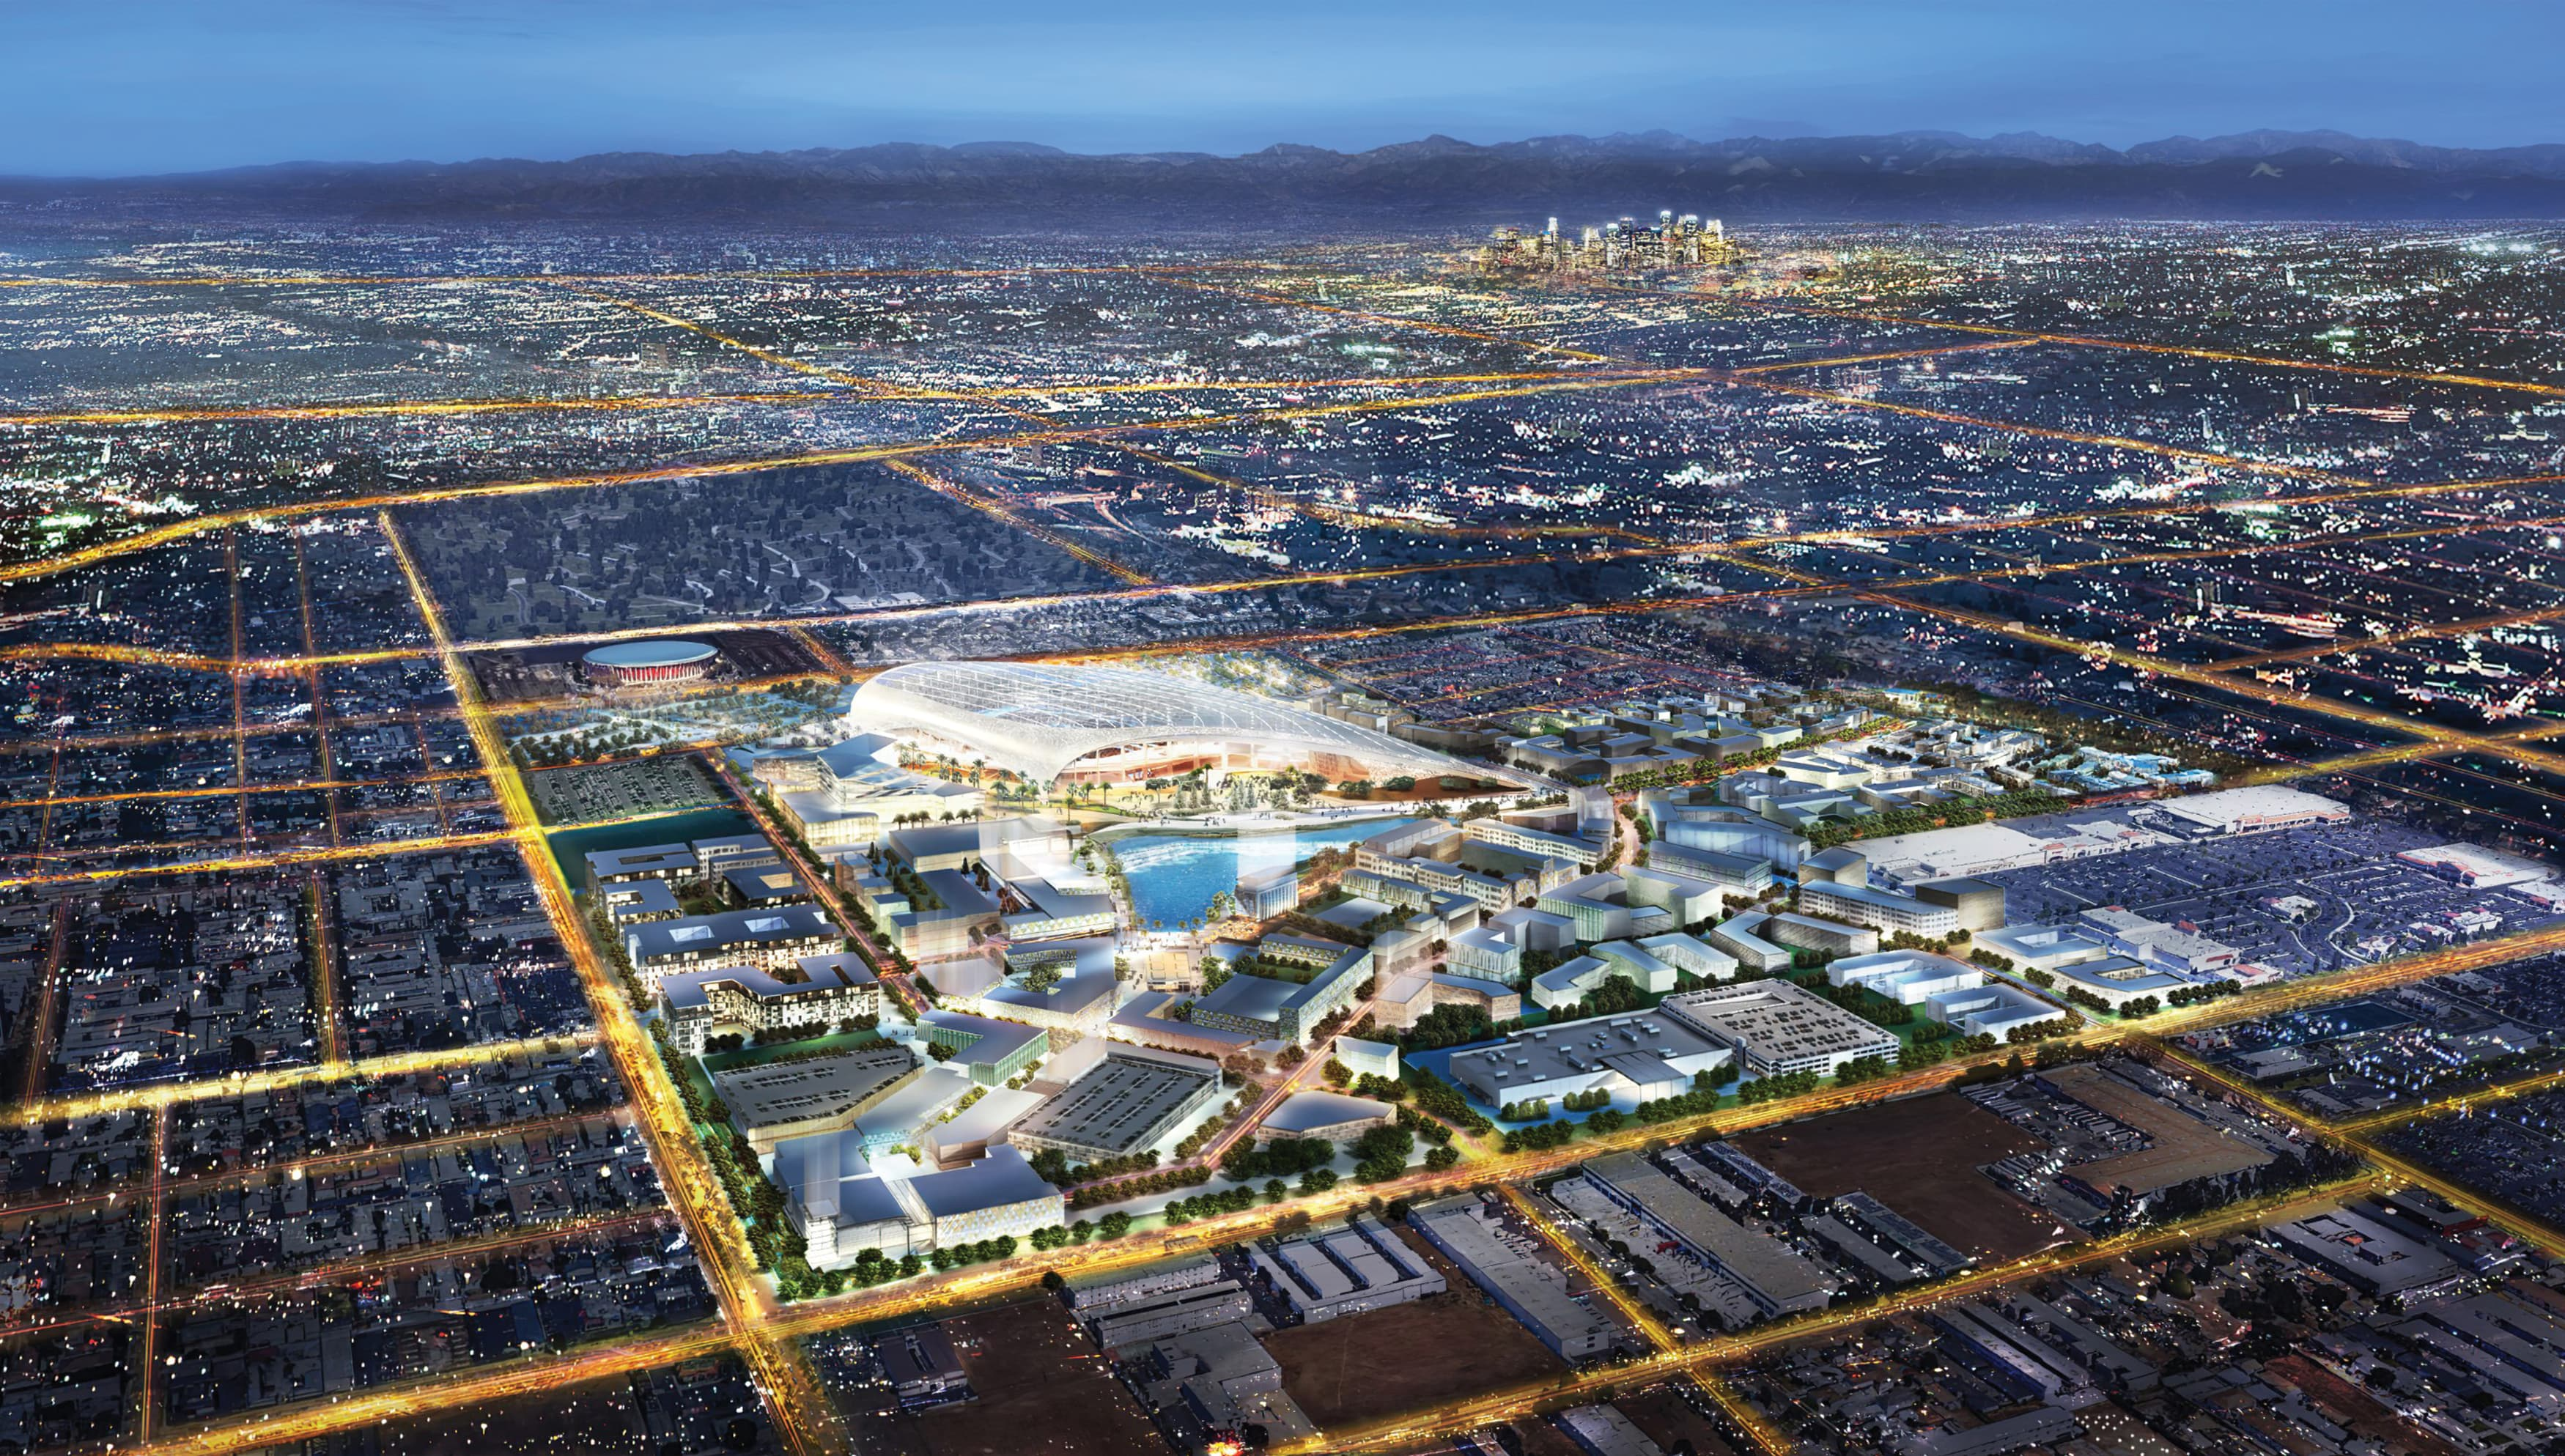 An aerial rendering of the Hollywood Park project, a mixed-use town center anchored by a 70,000 seat stadium.